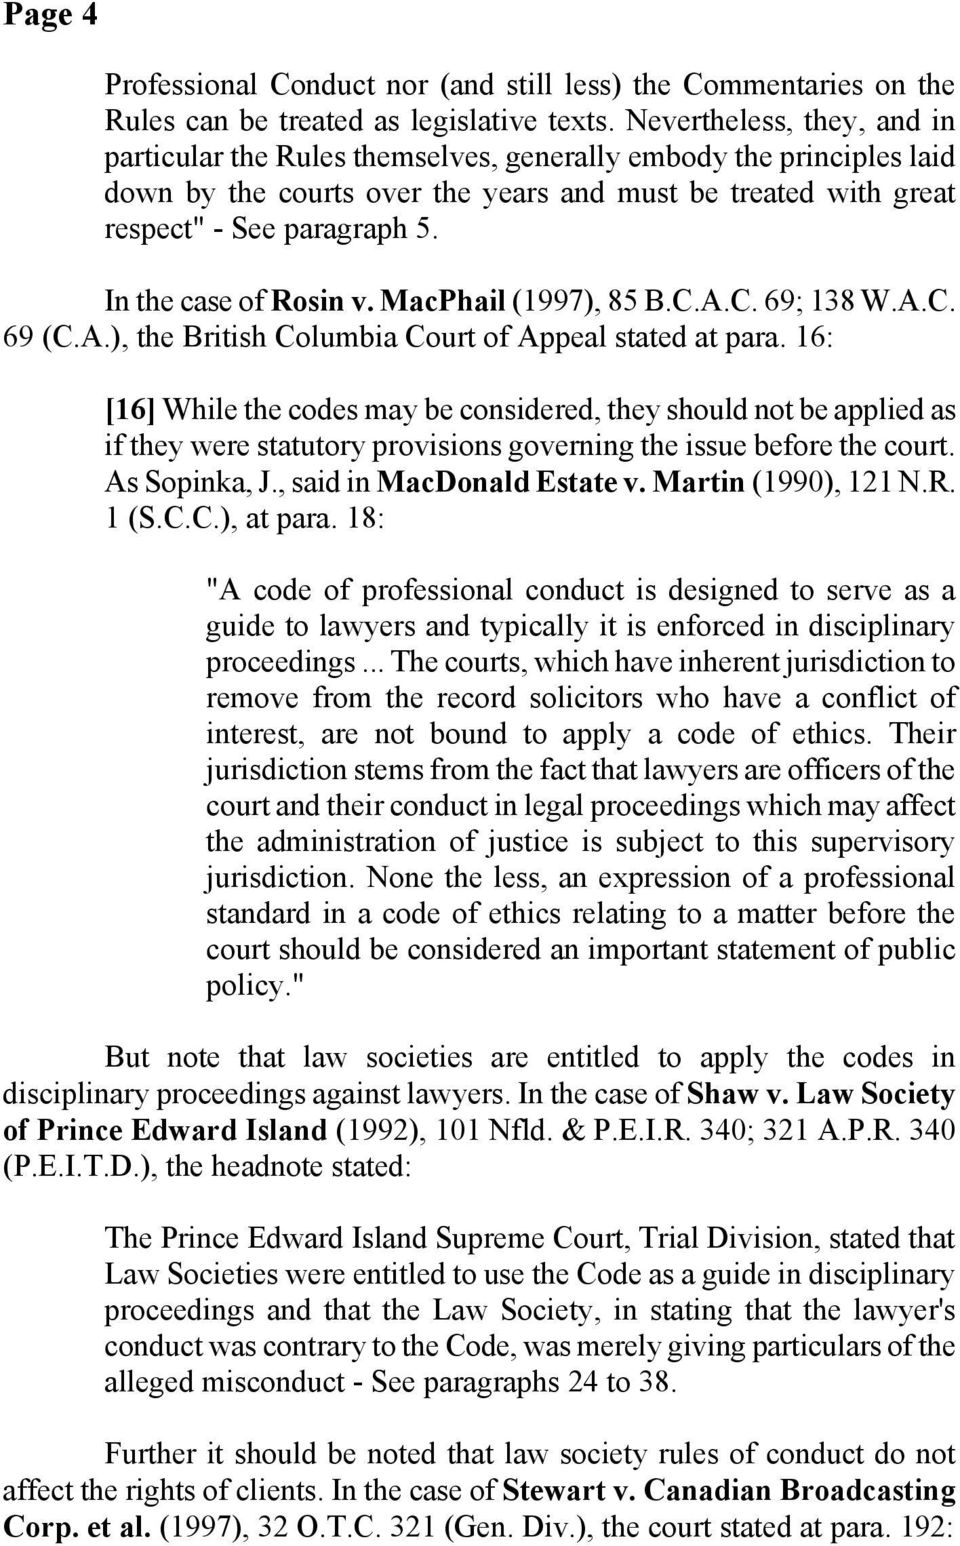 In the case of Rosin v. MacPhail (1997), 85 B.C.A.C. 69; 138 W.A.C. 69 (C.A.), the British Columbia Court of Appeal stated at para.